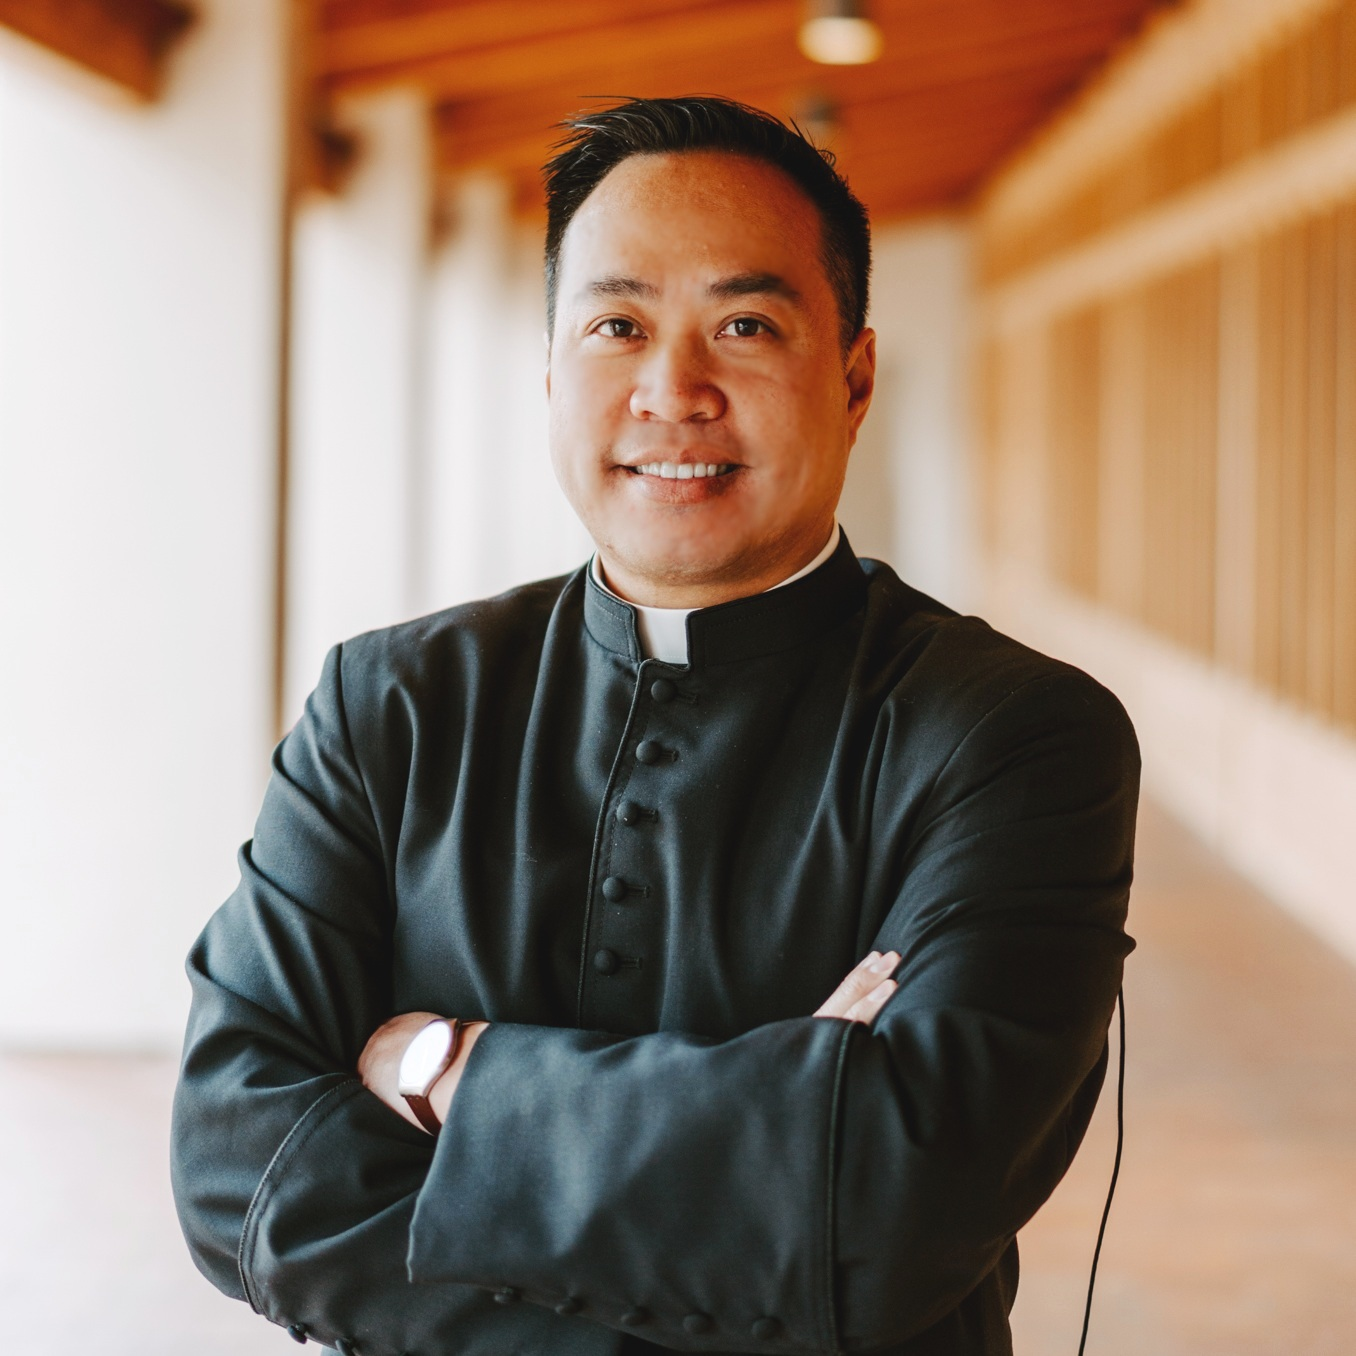 FR. DUY LE - ADMINISTRATOR949.589.7767 x2111 | EmailAbout Fr. Duy